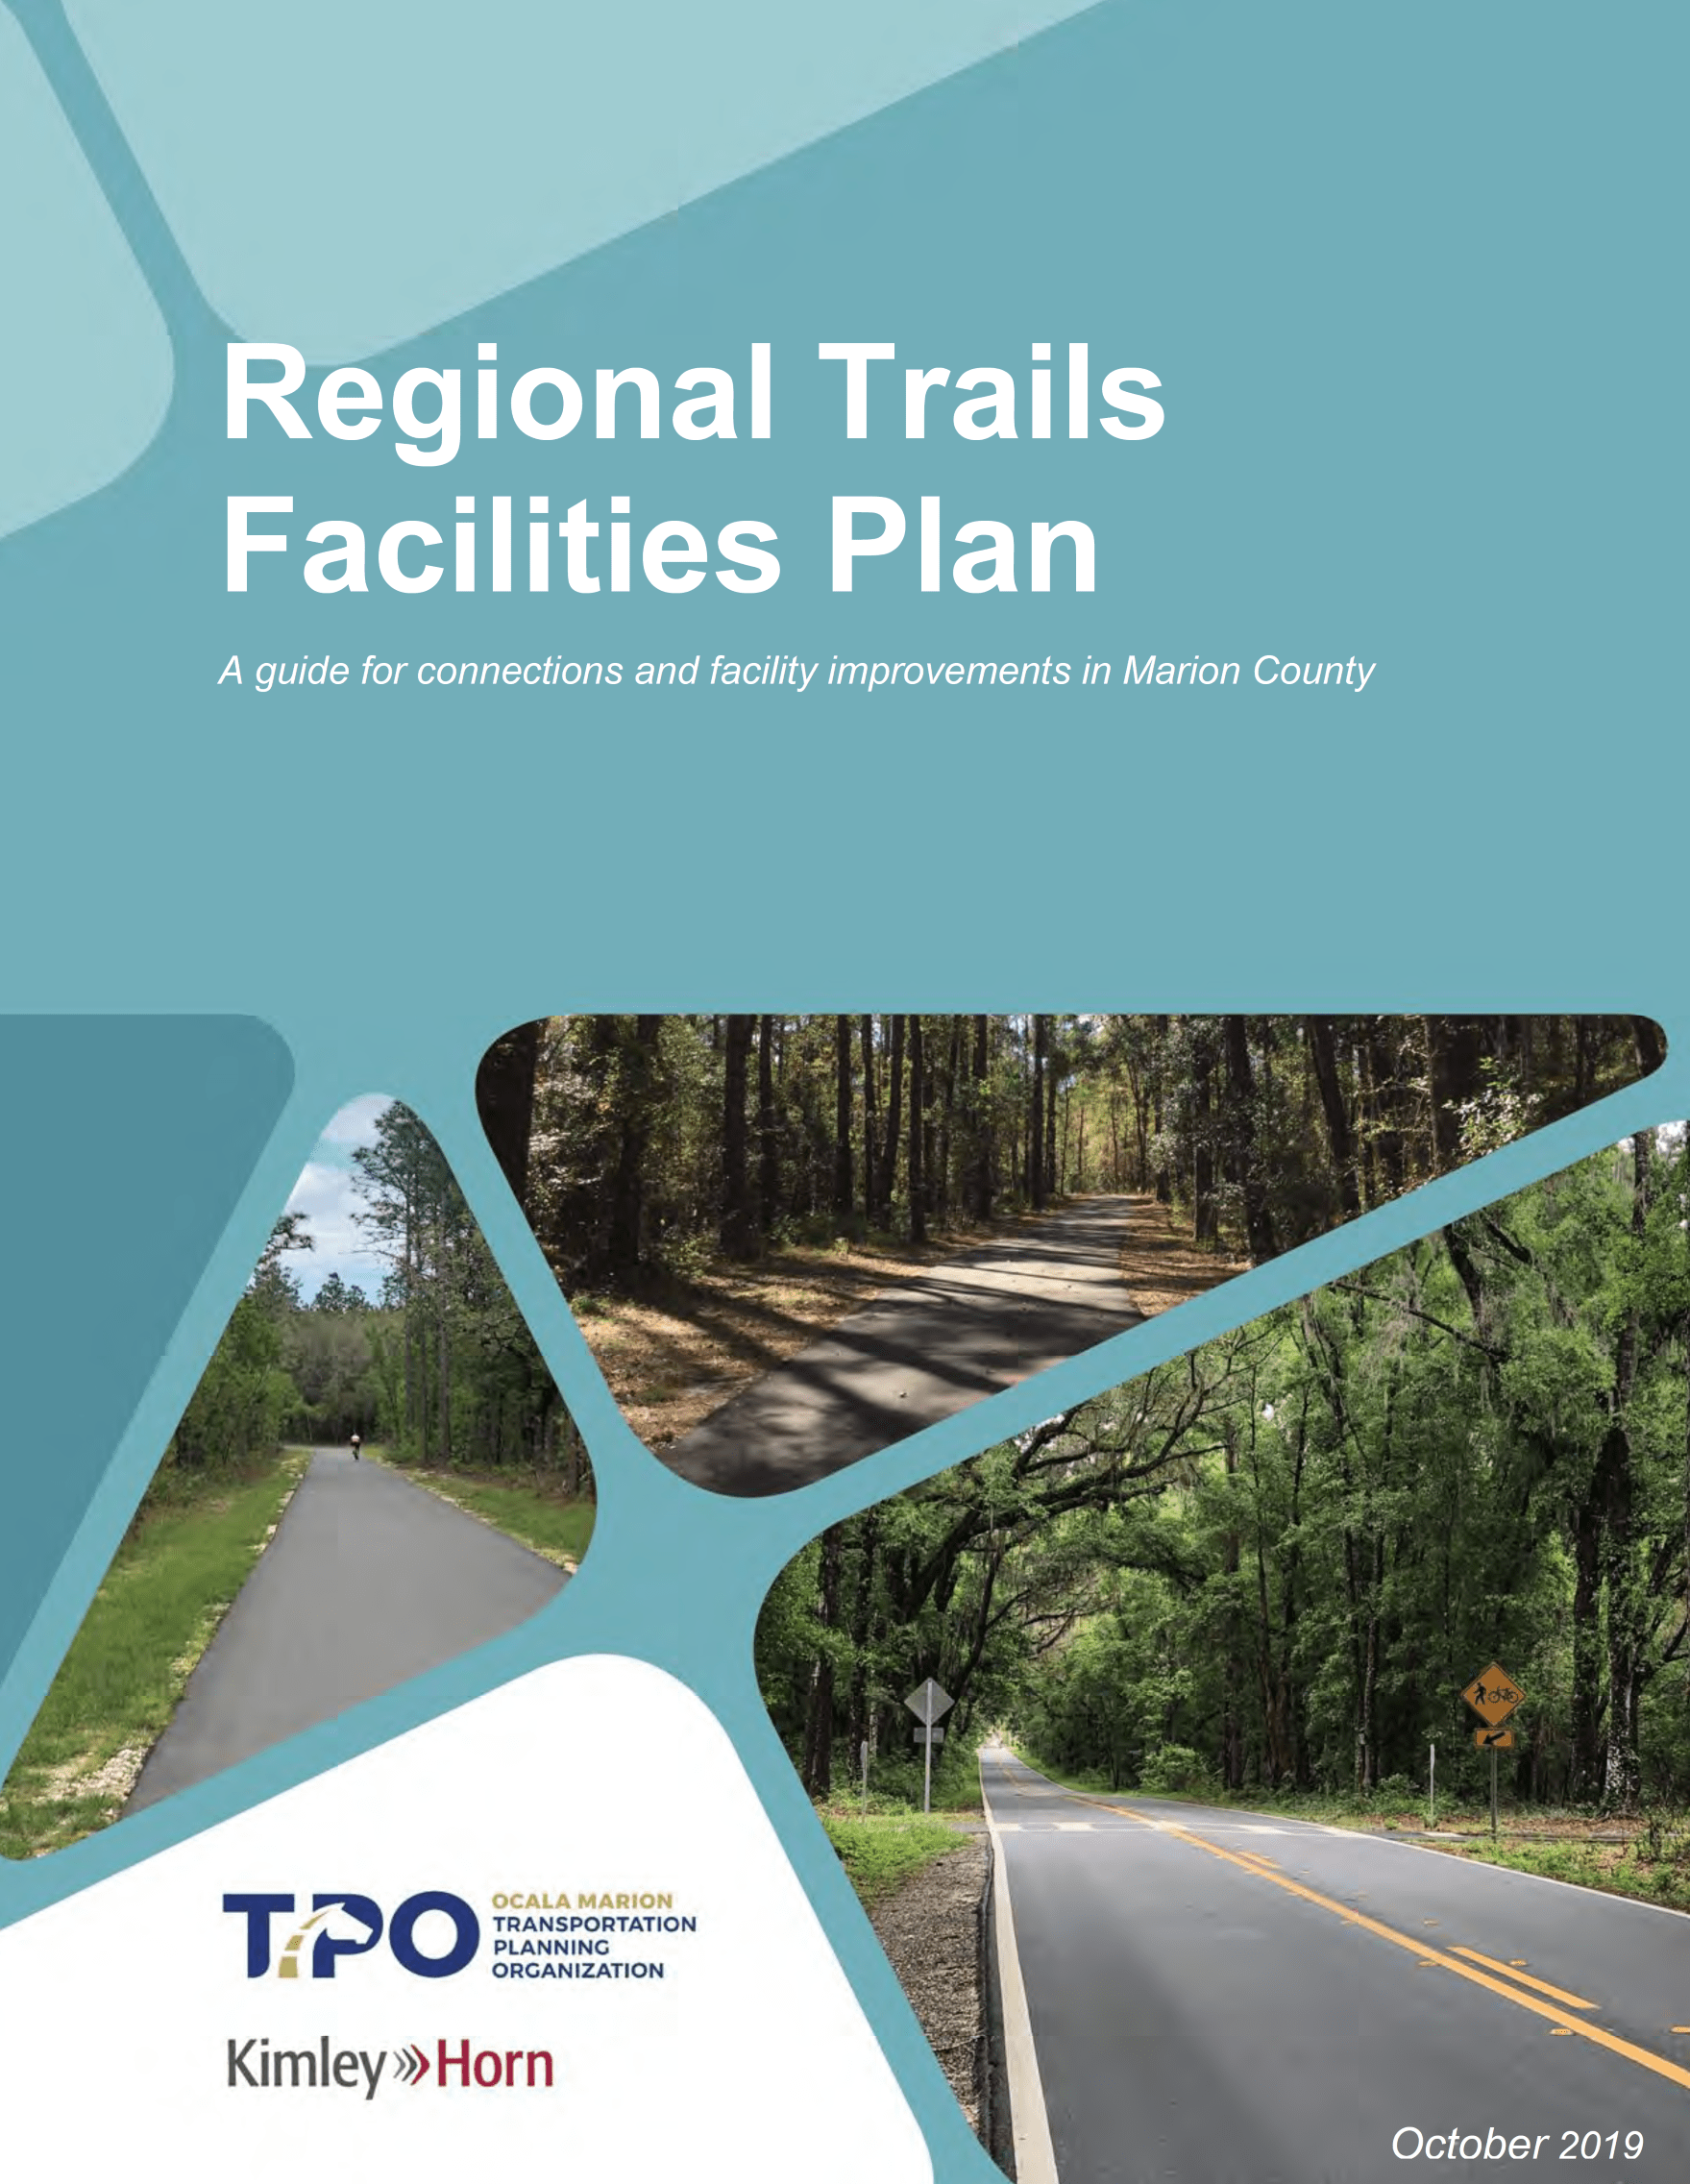 Regional Trails Facility Plan